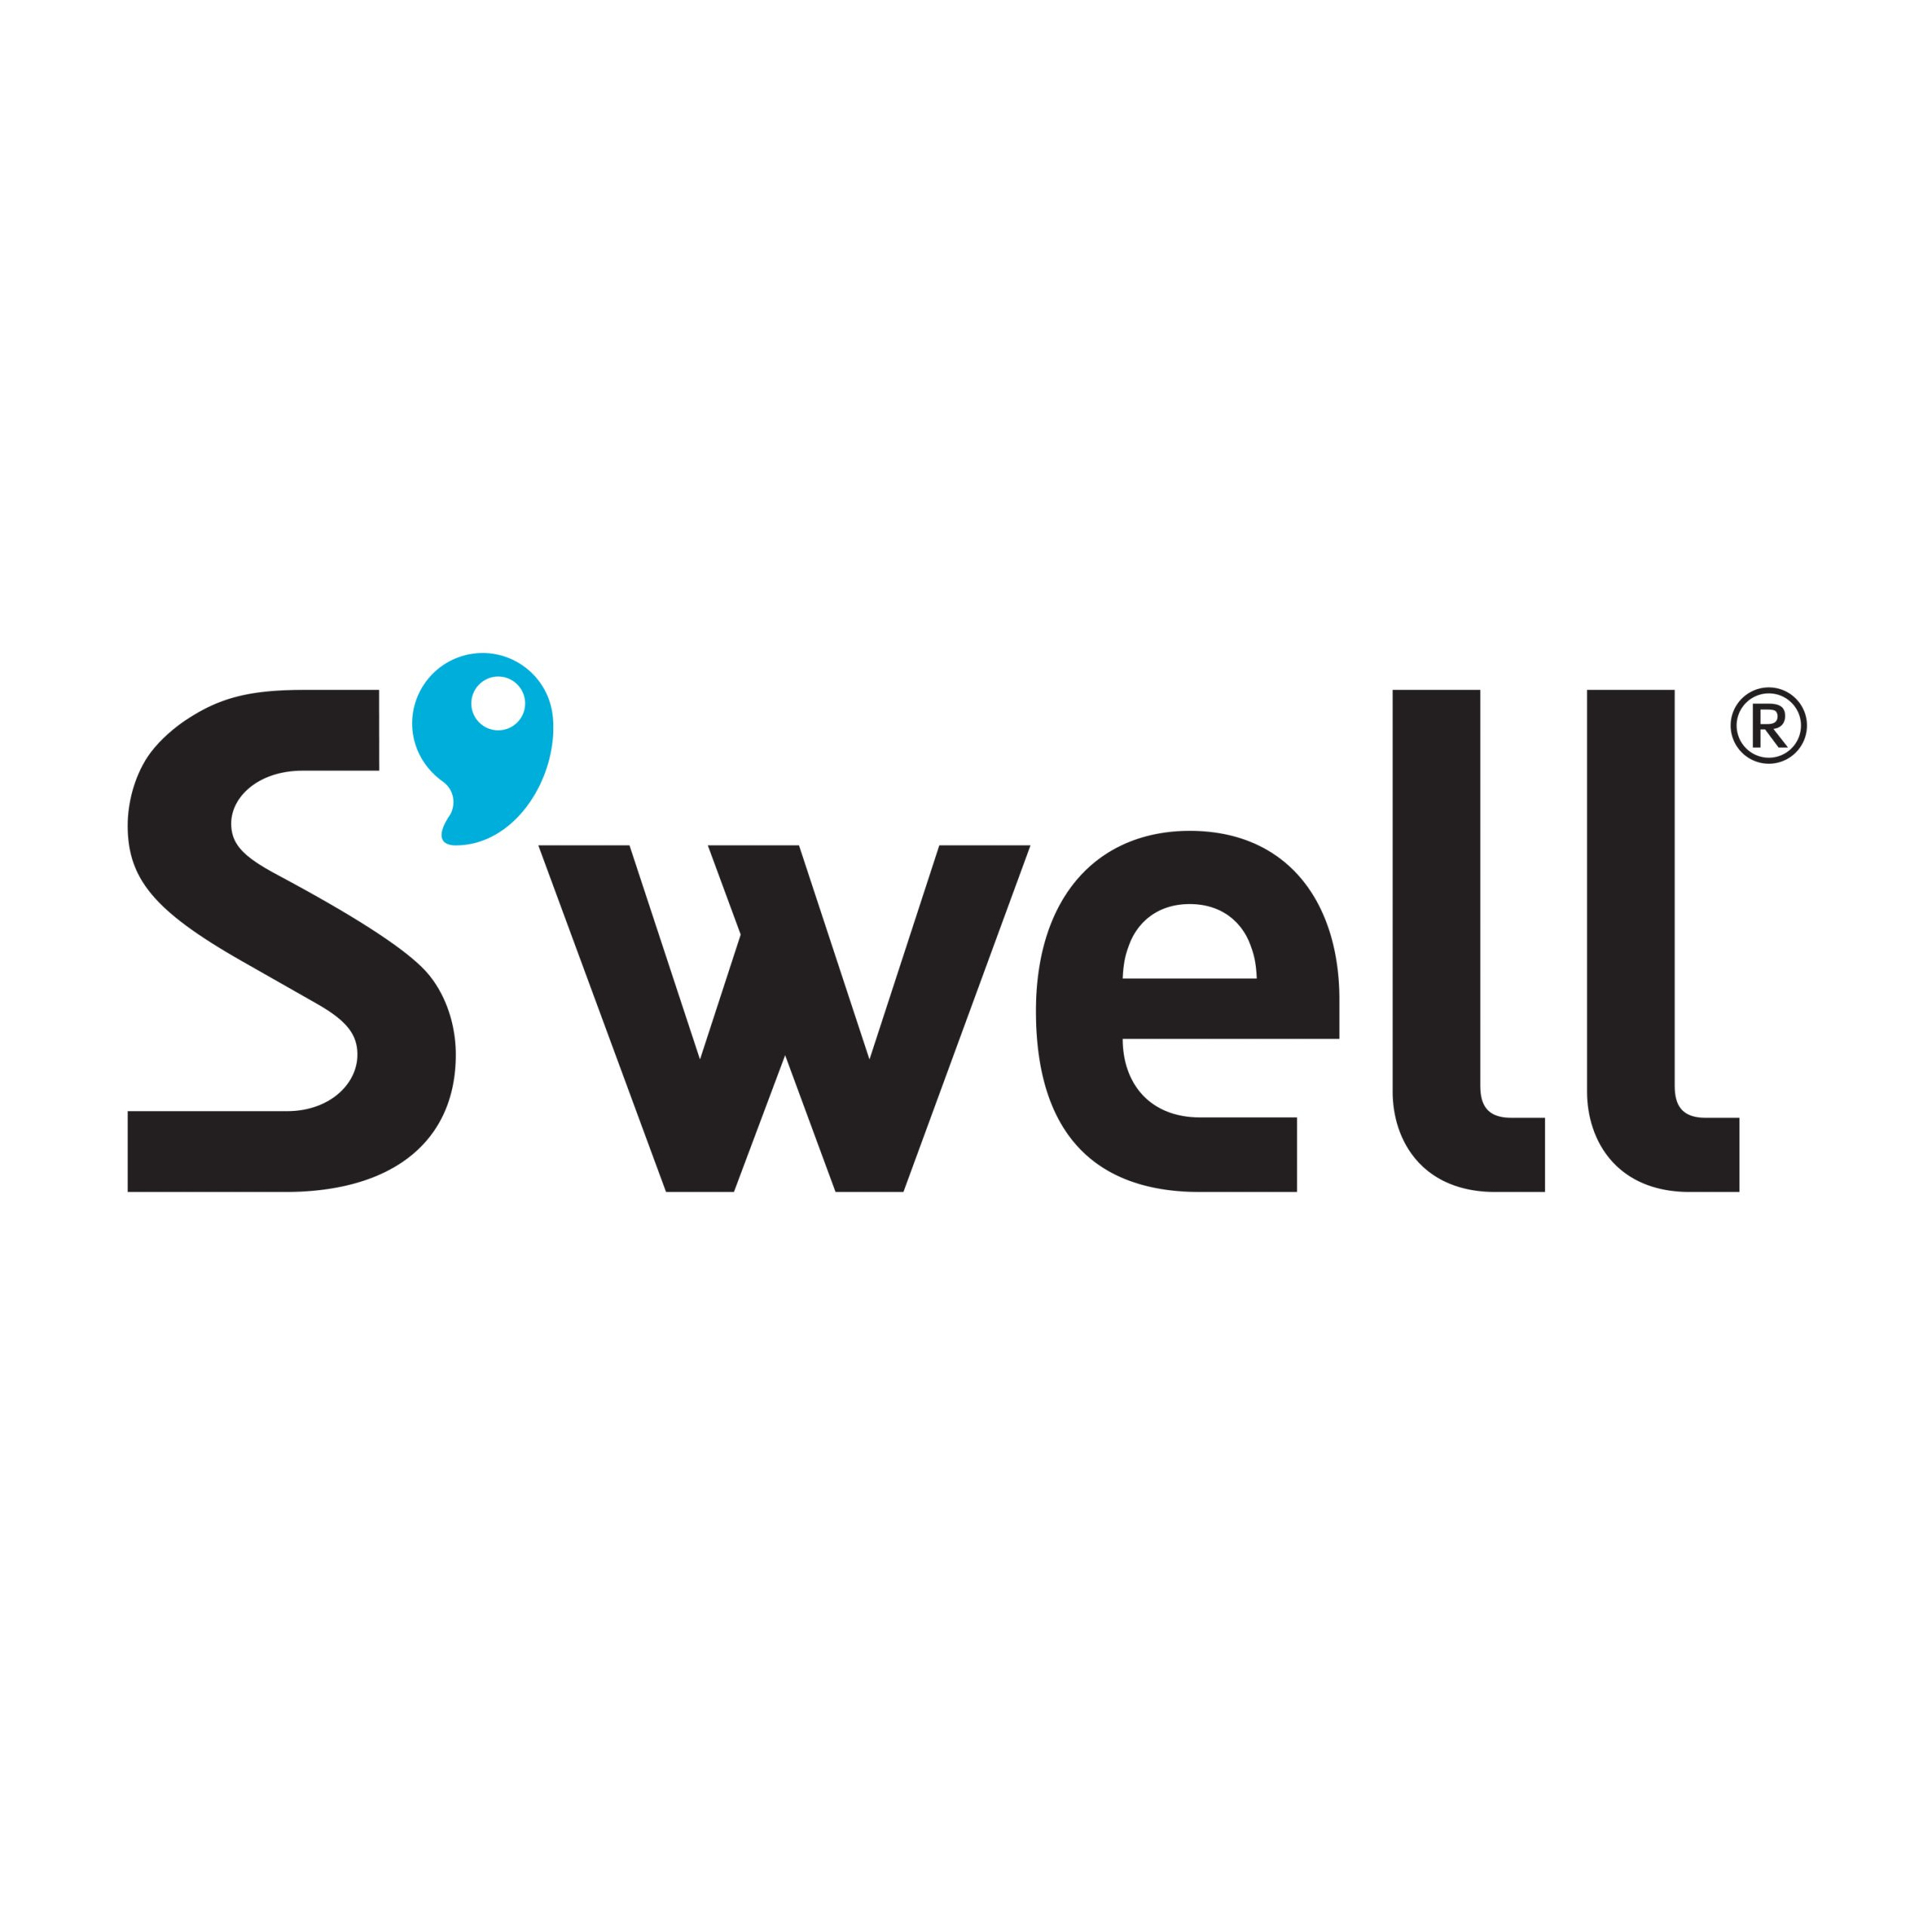 S'well coupon codes